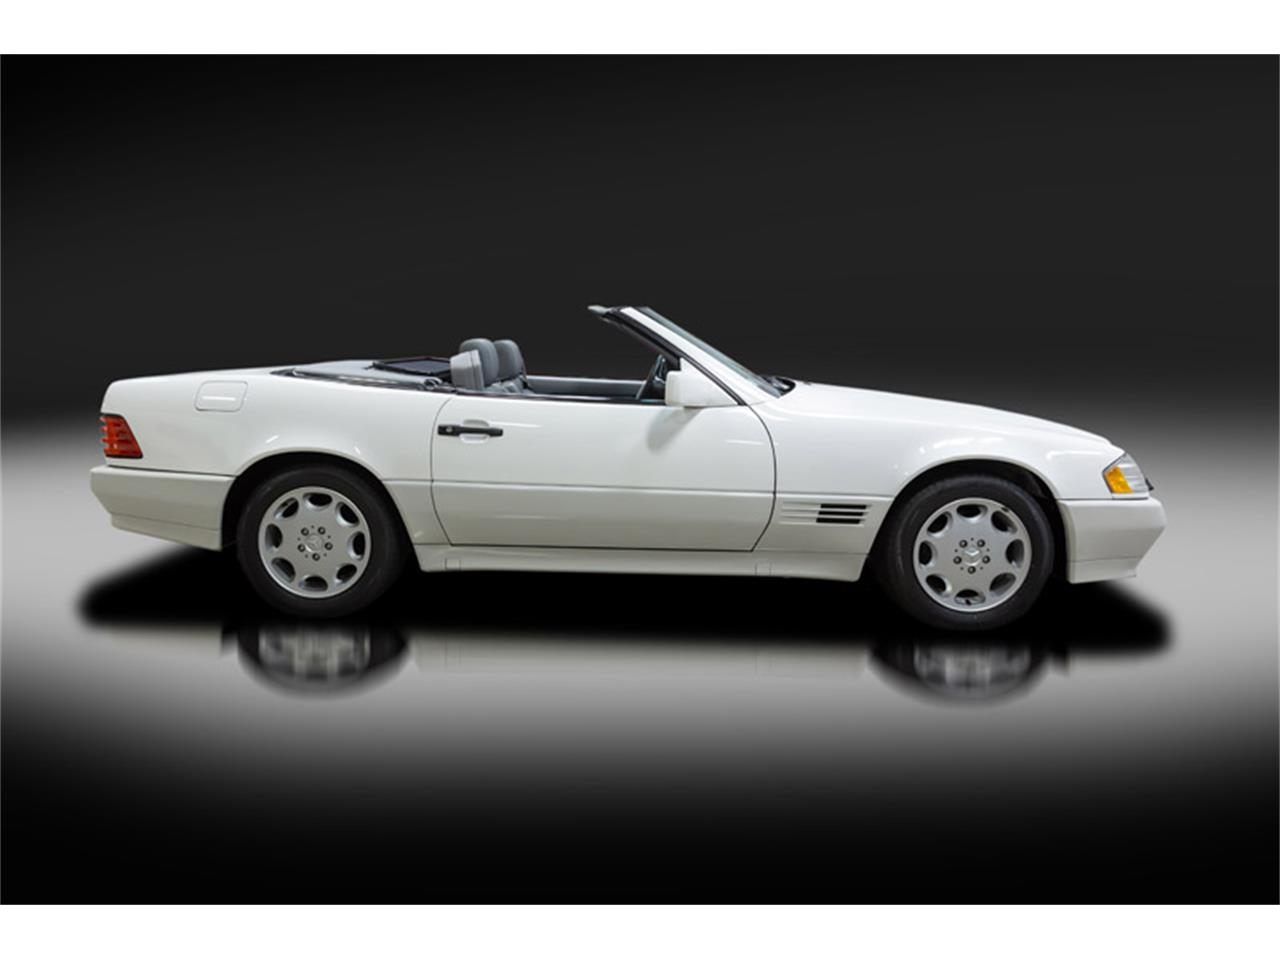 Large Picture of 1995 SL500 Auction Vehicle Offered by MS Classic Cars - QQJK